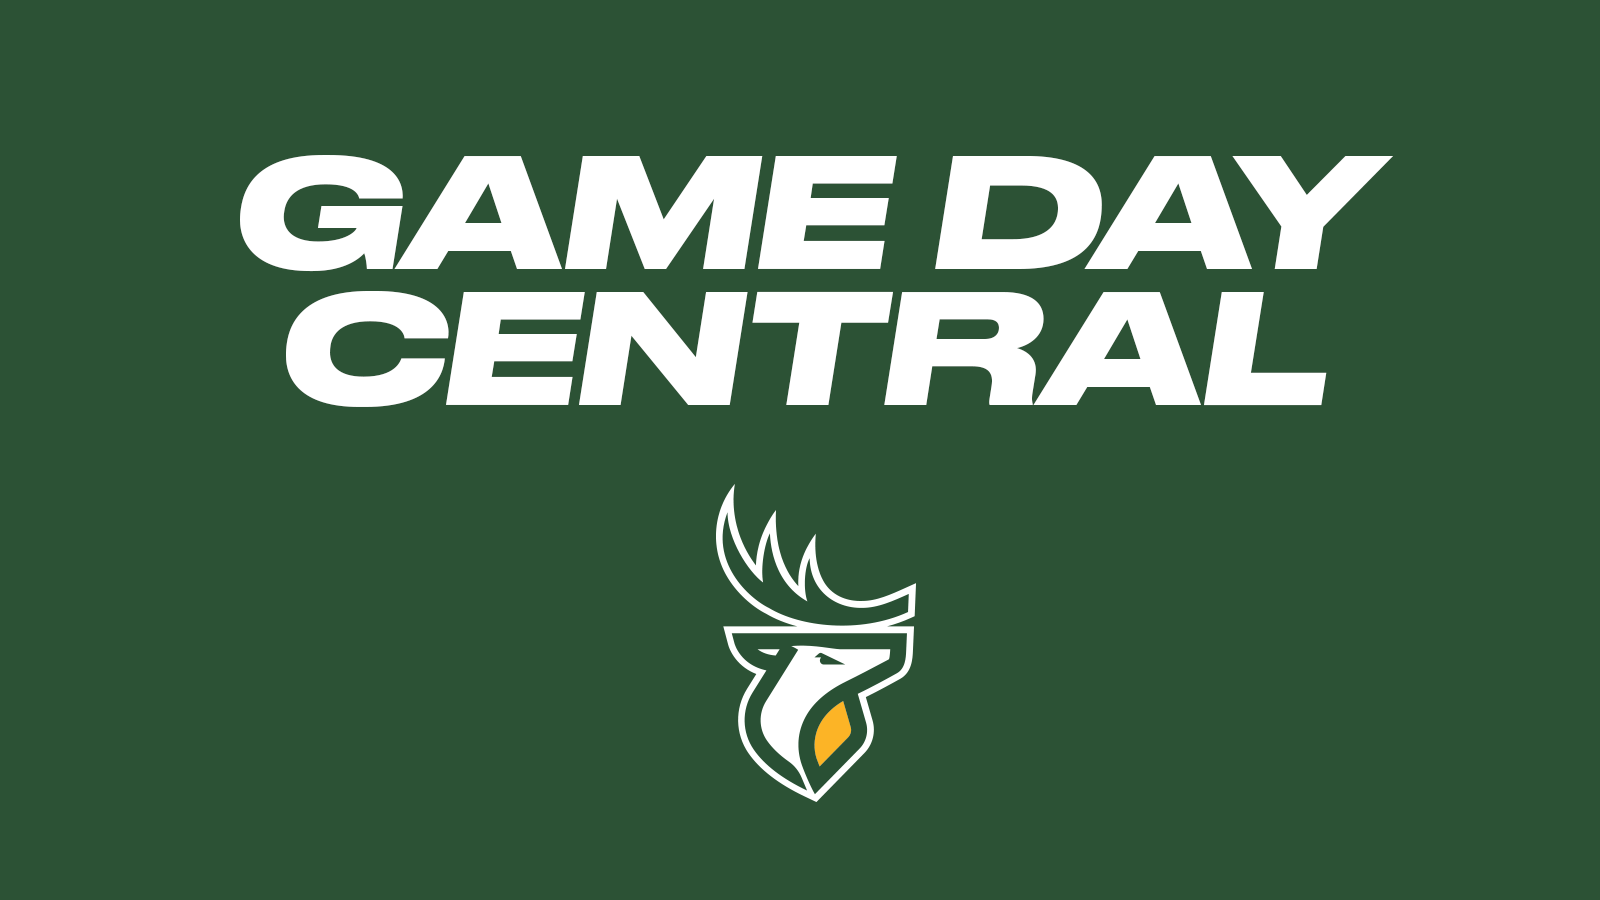 Game Day Central